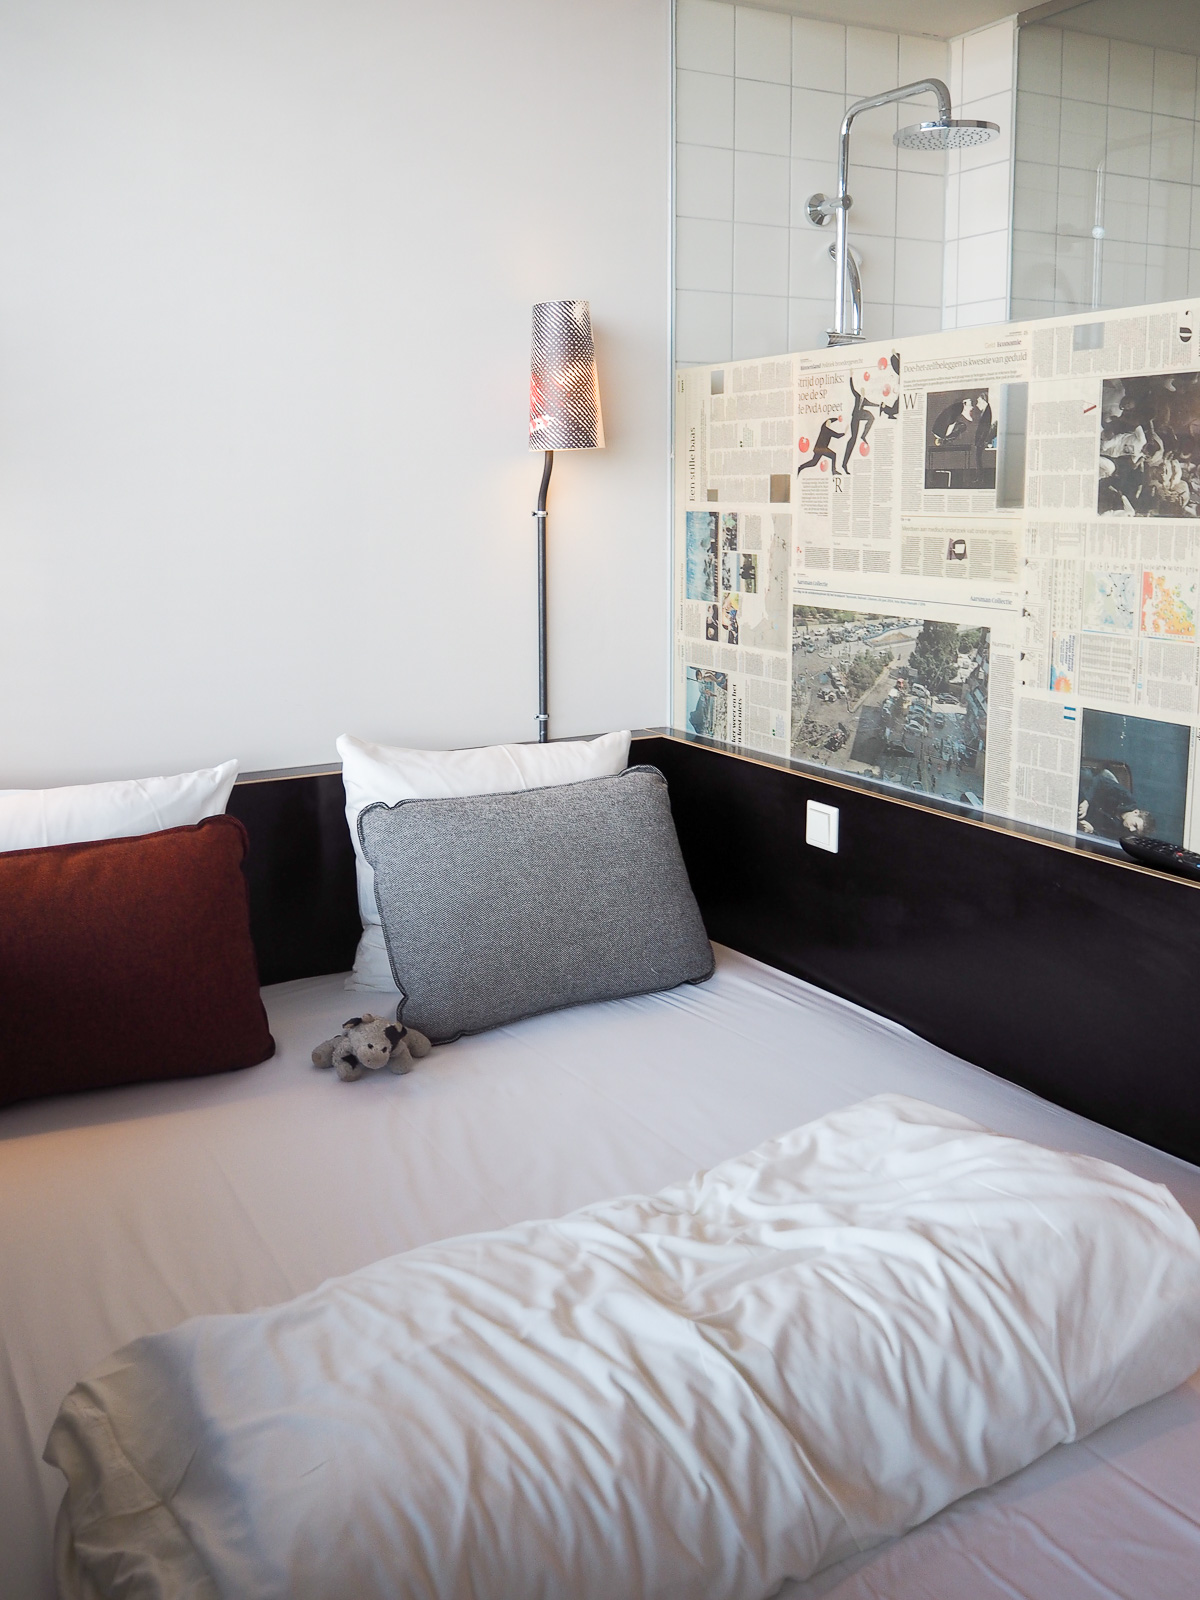 Volkshotel, Amsterdam Hotel, Hotel, Amsterdam, Where to stay in Amsterdam